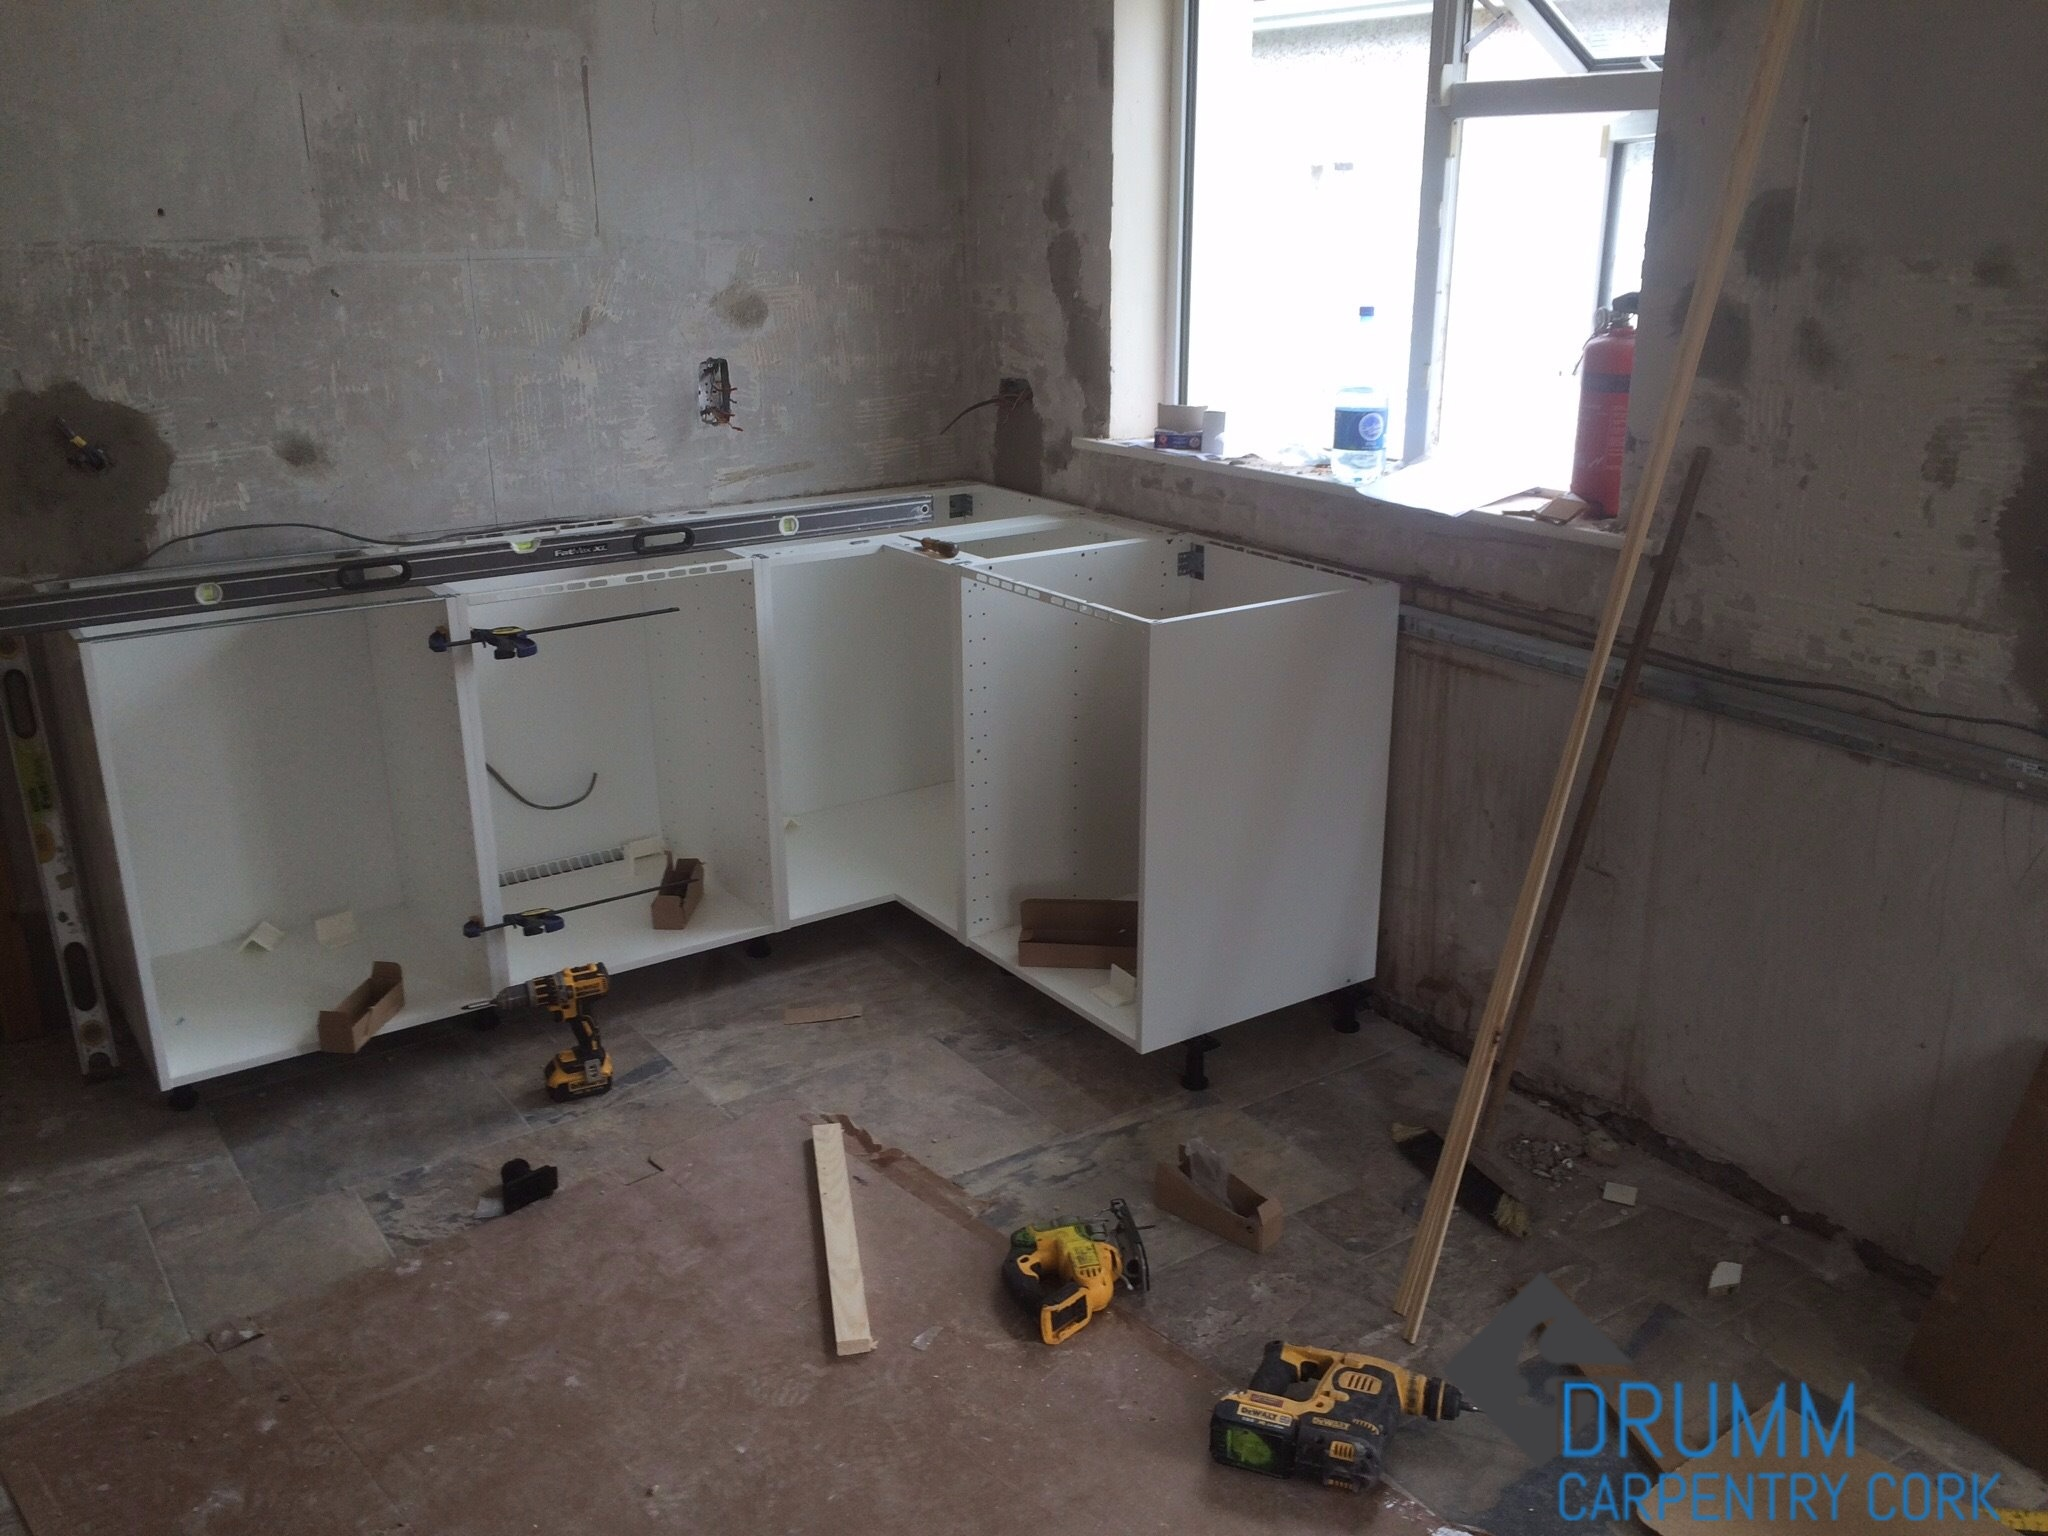 b&q kitchen fitters Limerick